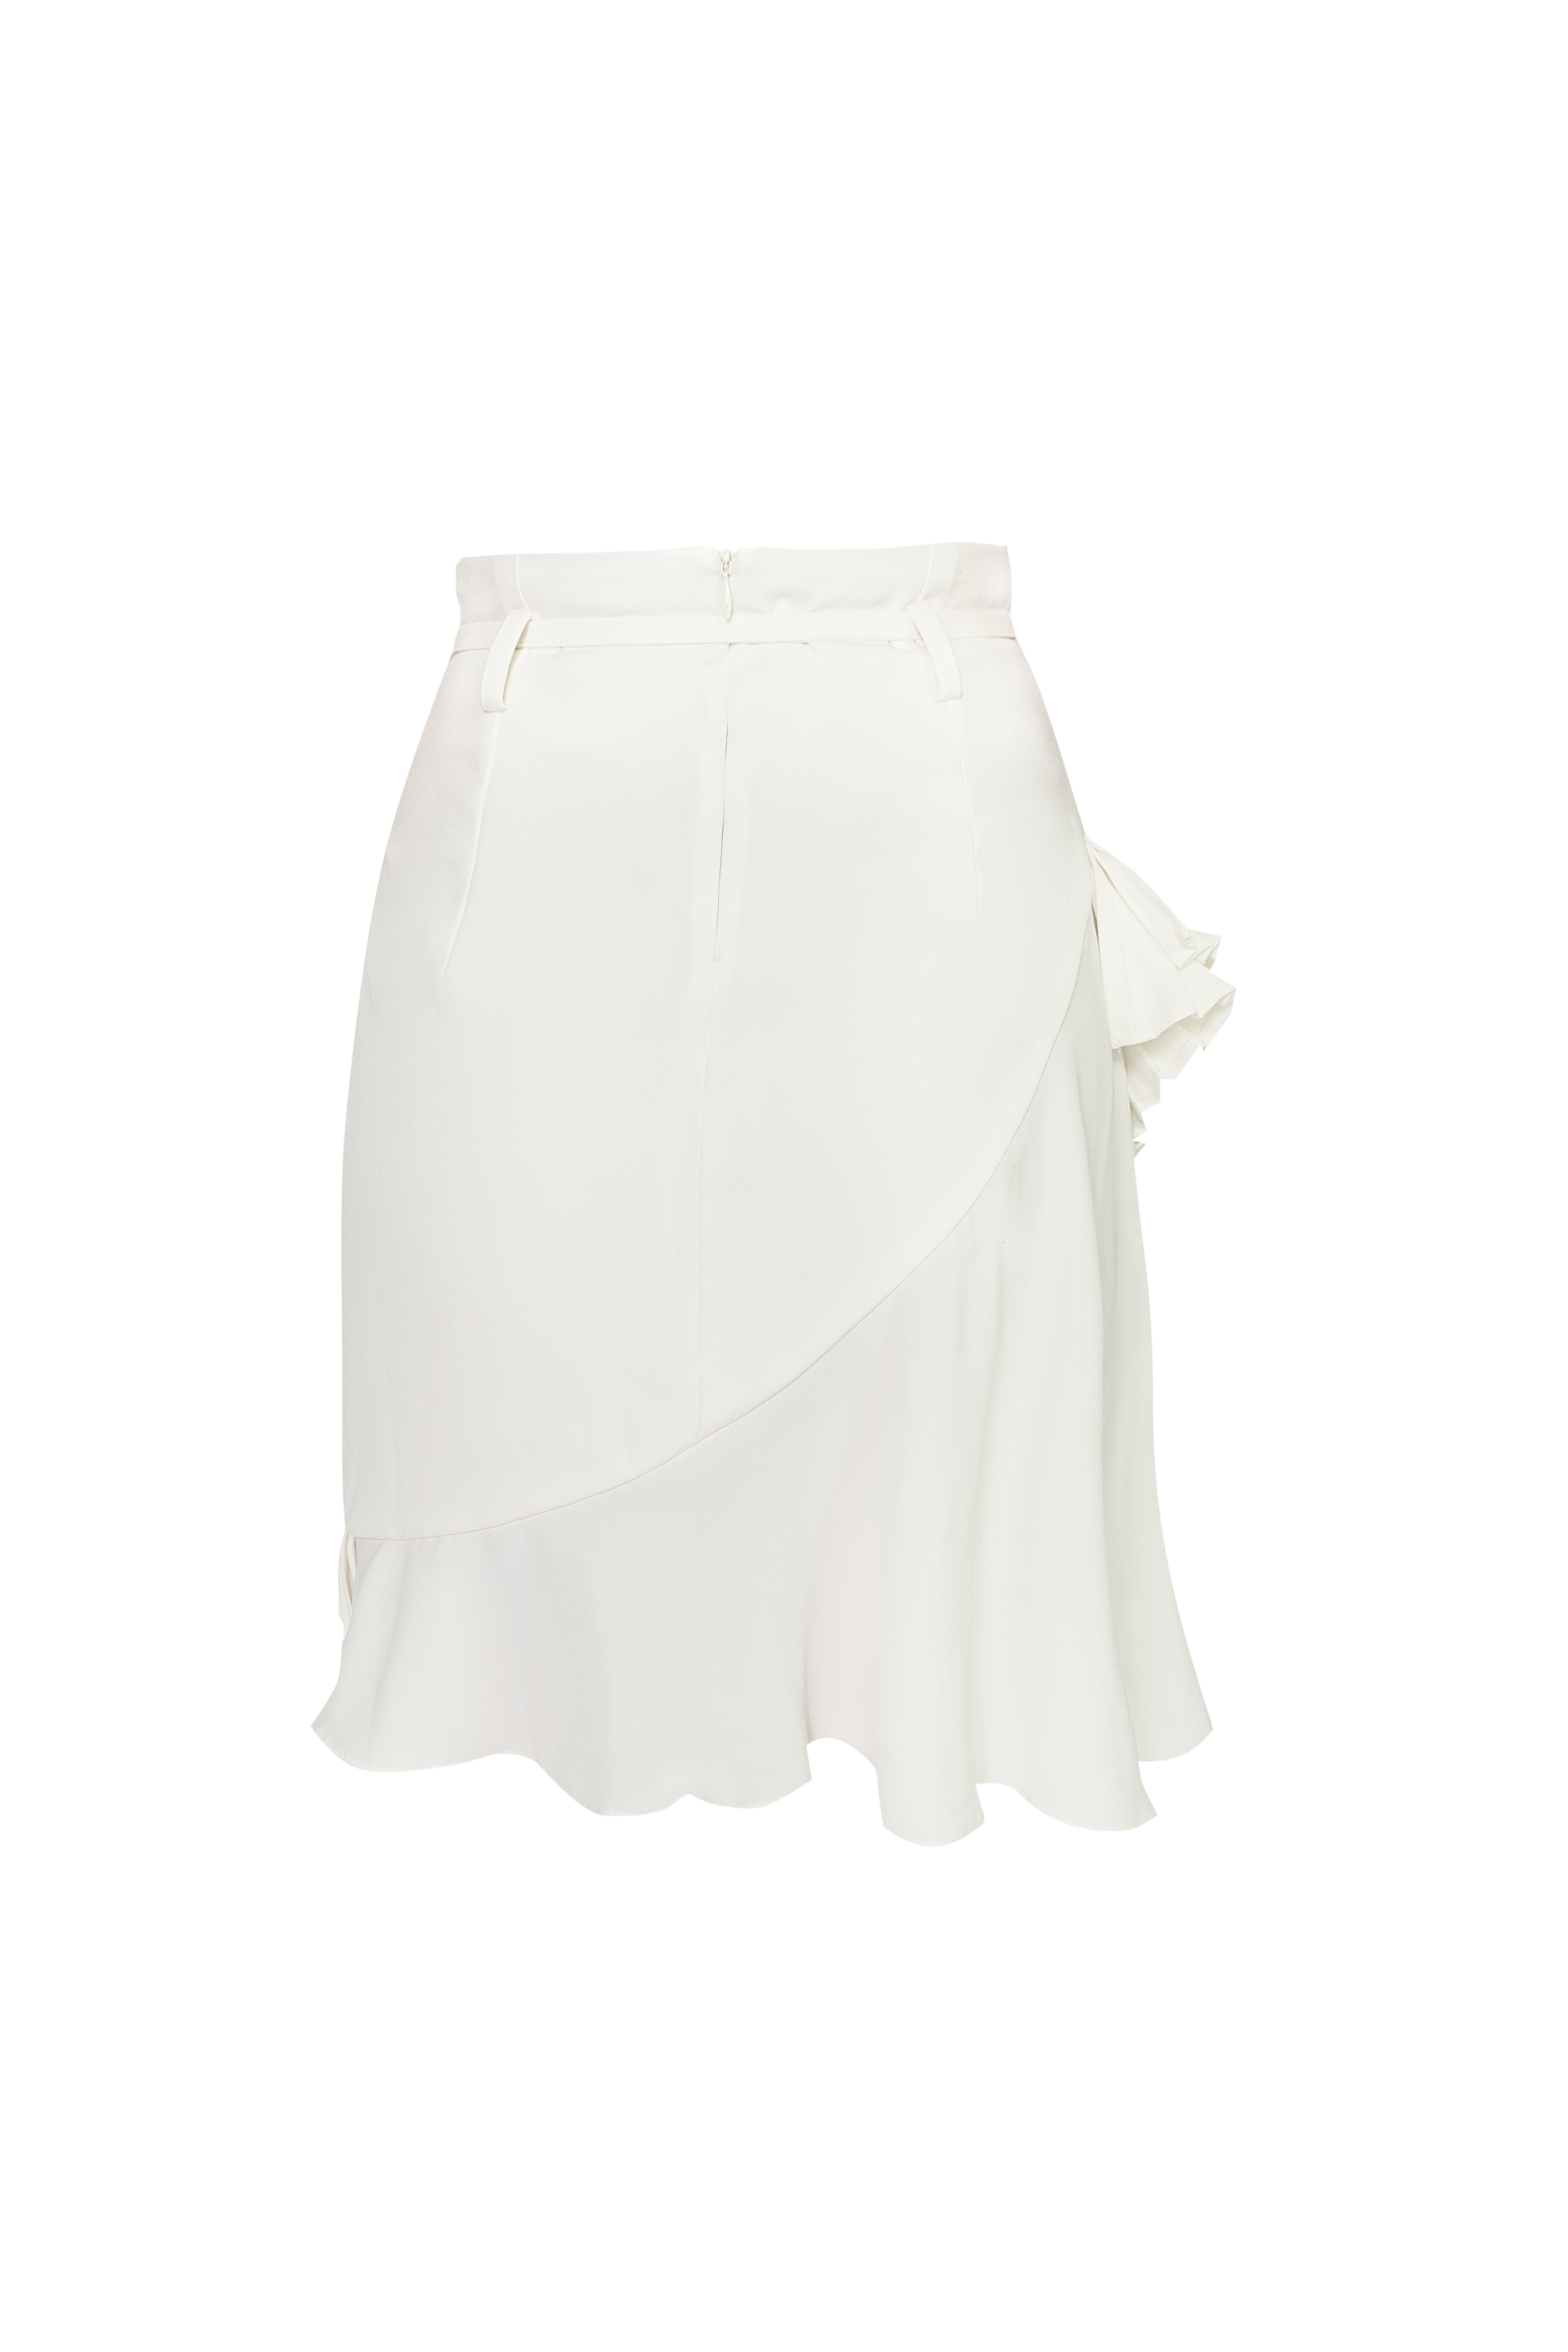 Thais Skirt by Concepción Miranda on curated-crowd.com